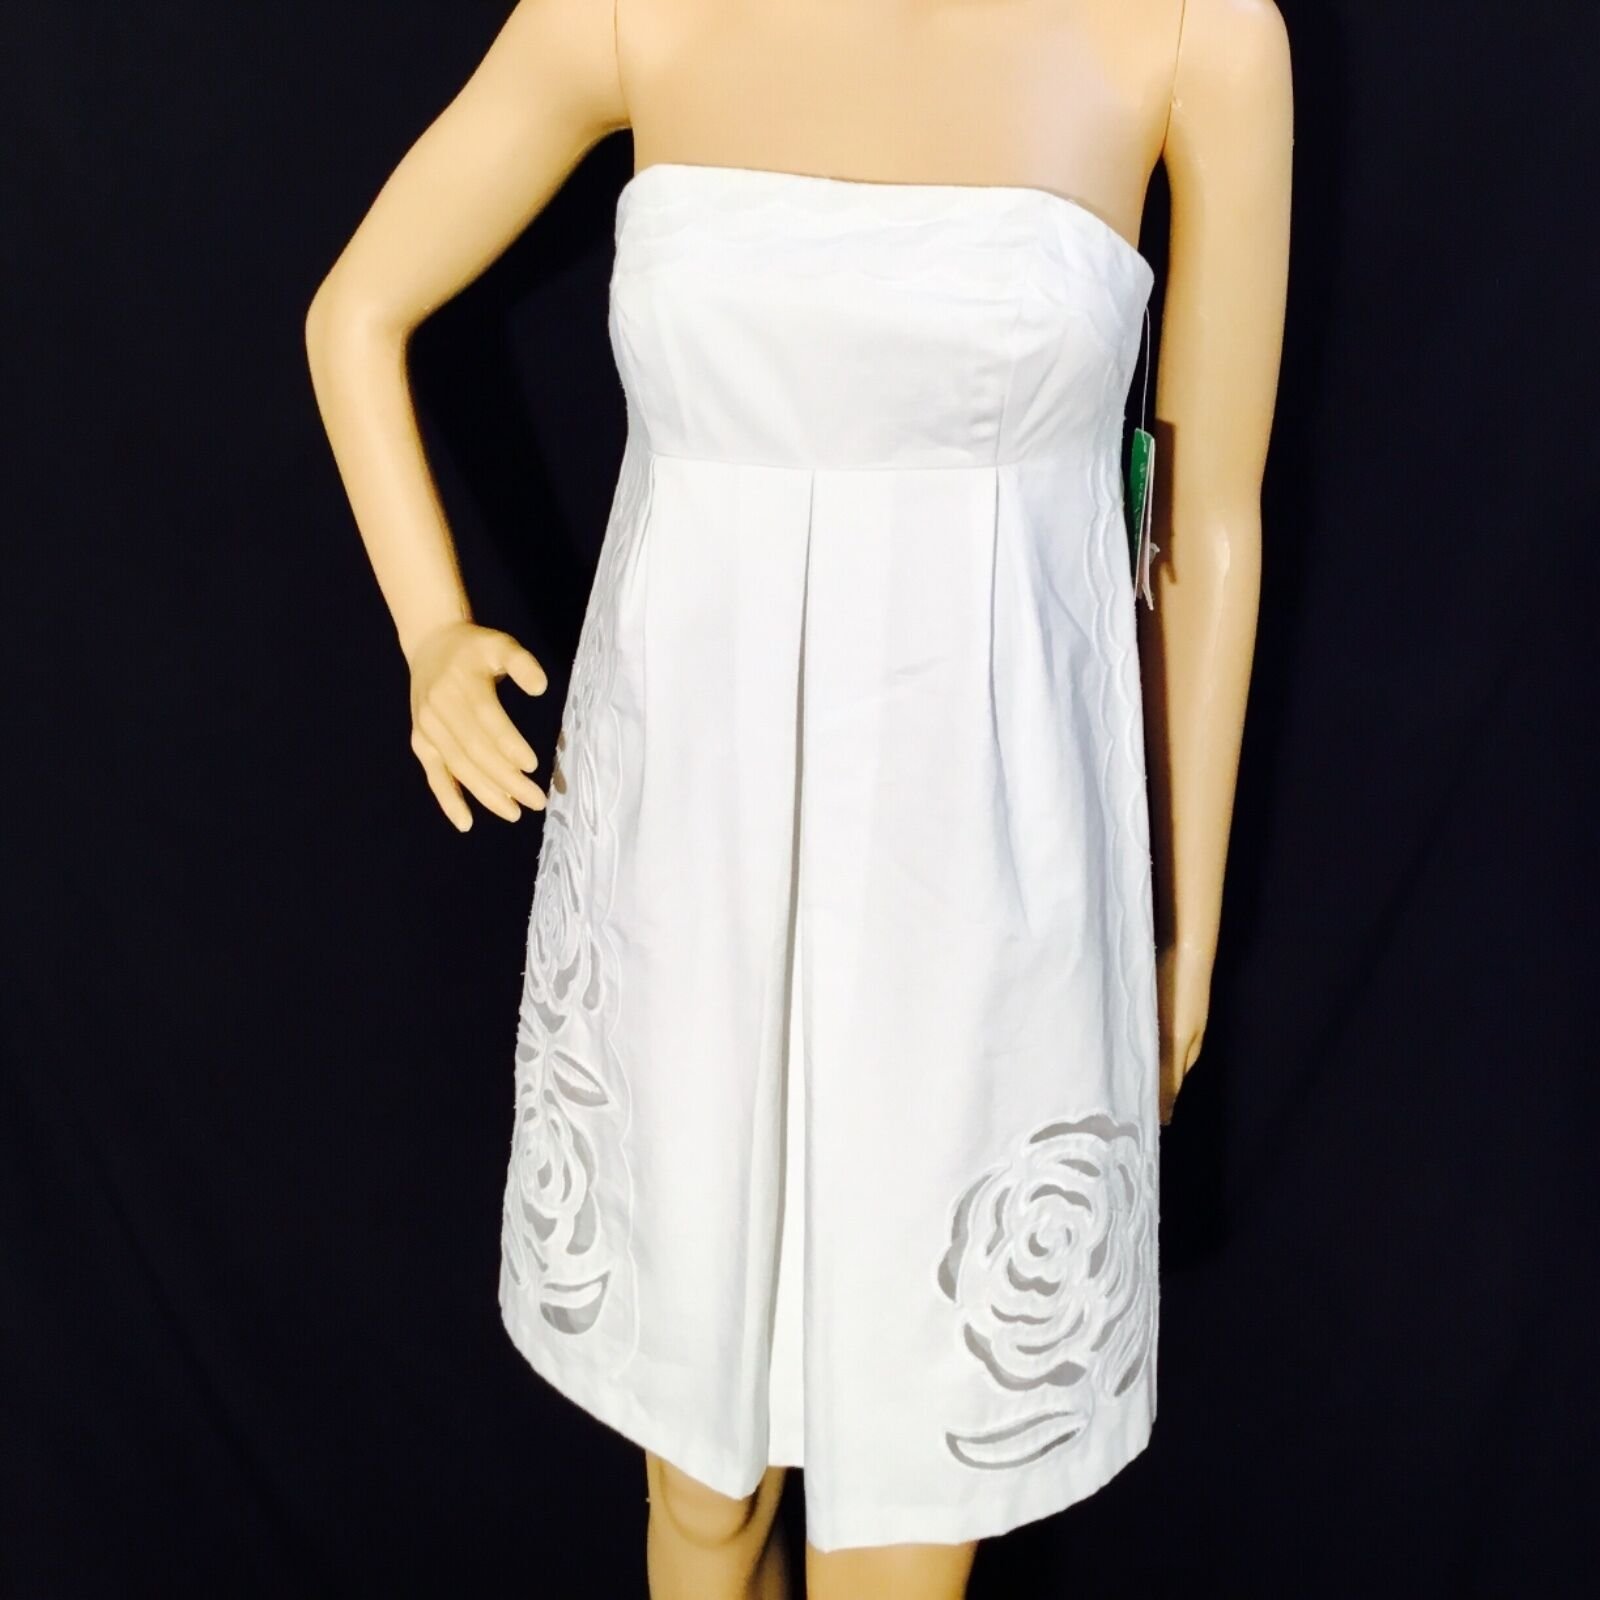 NWT LILLY PULITZER Betsey Dress Embroiderot, Classic Weiß, Größe 0, srp